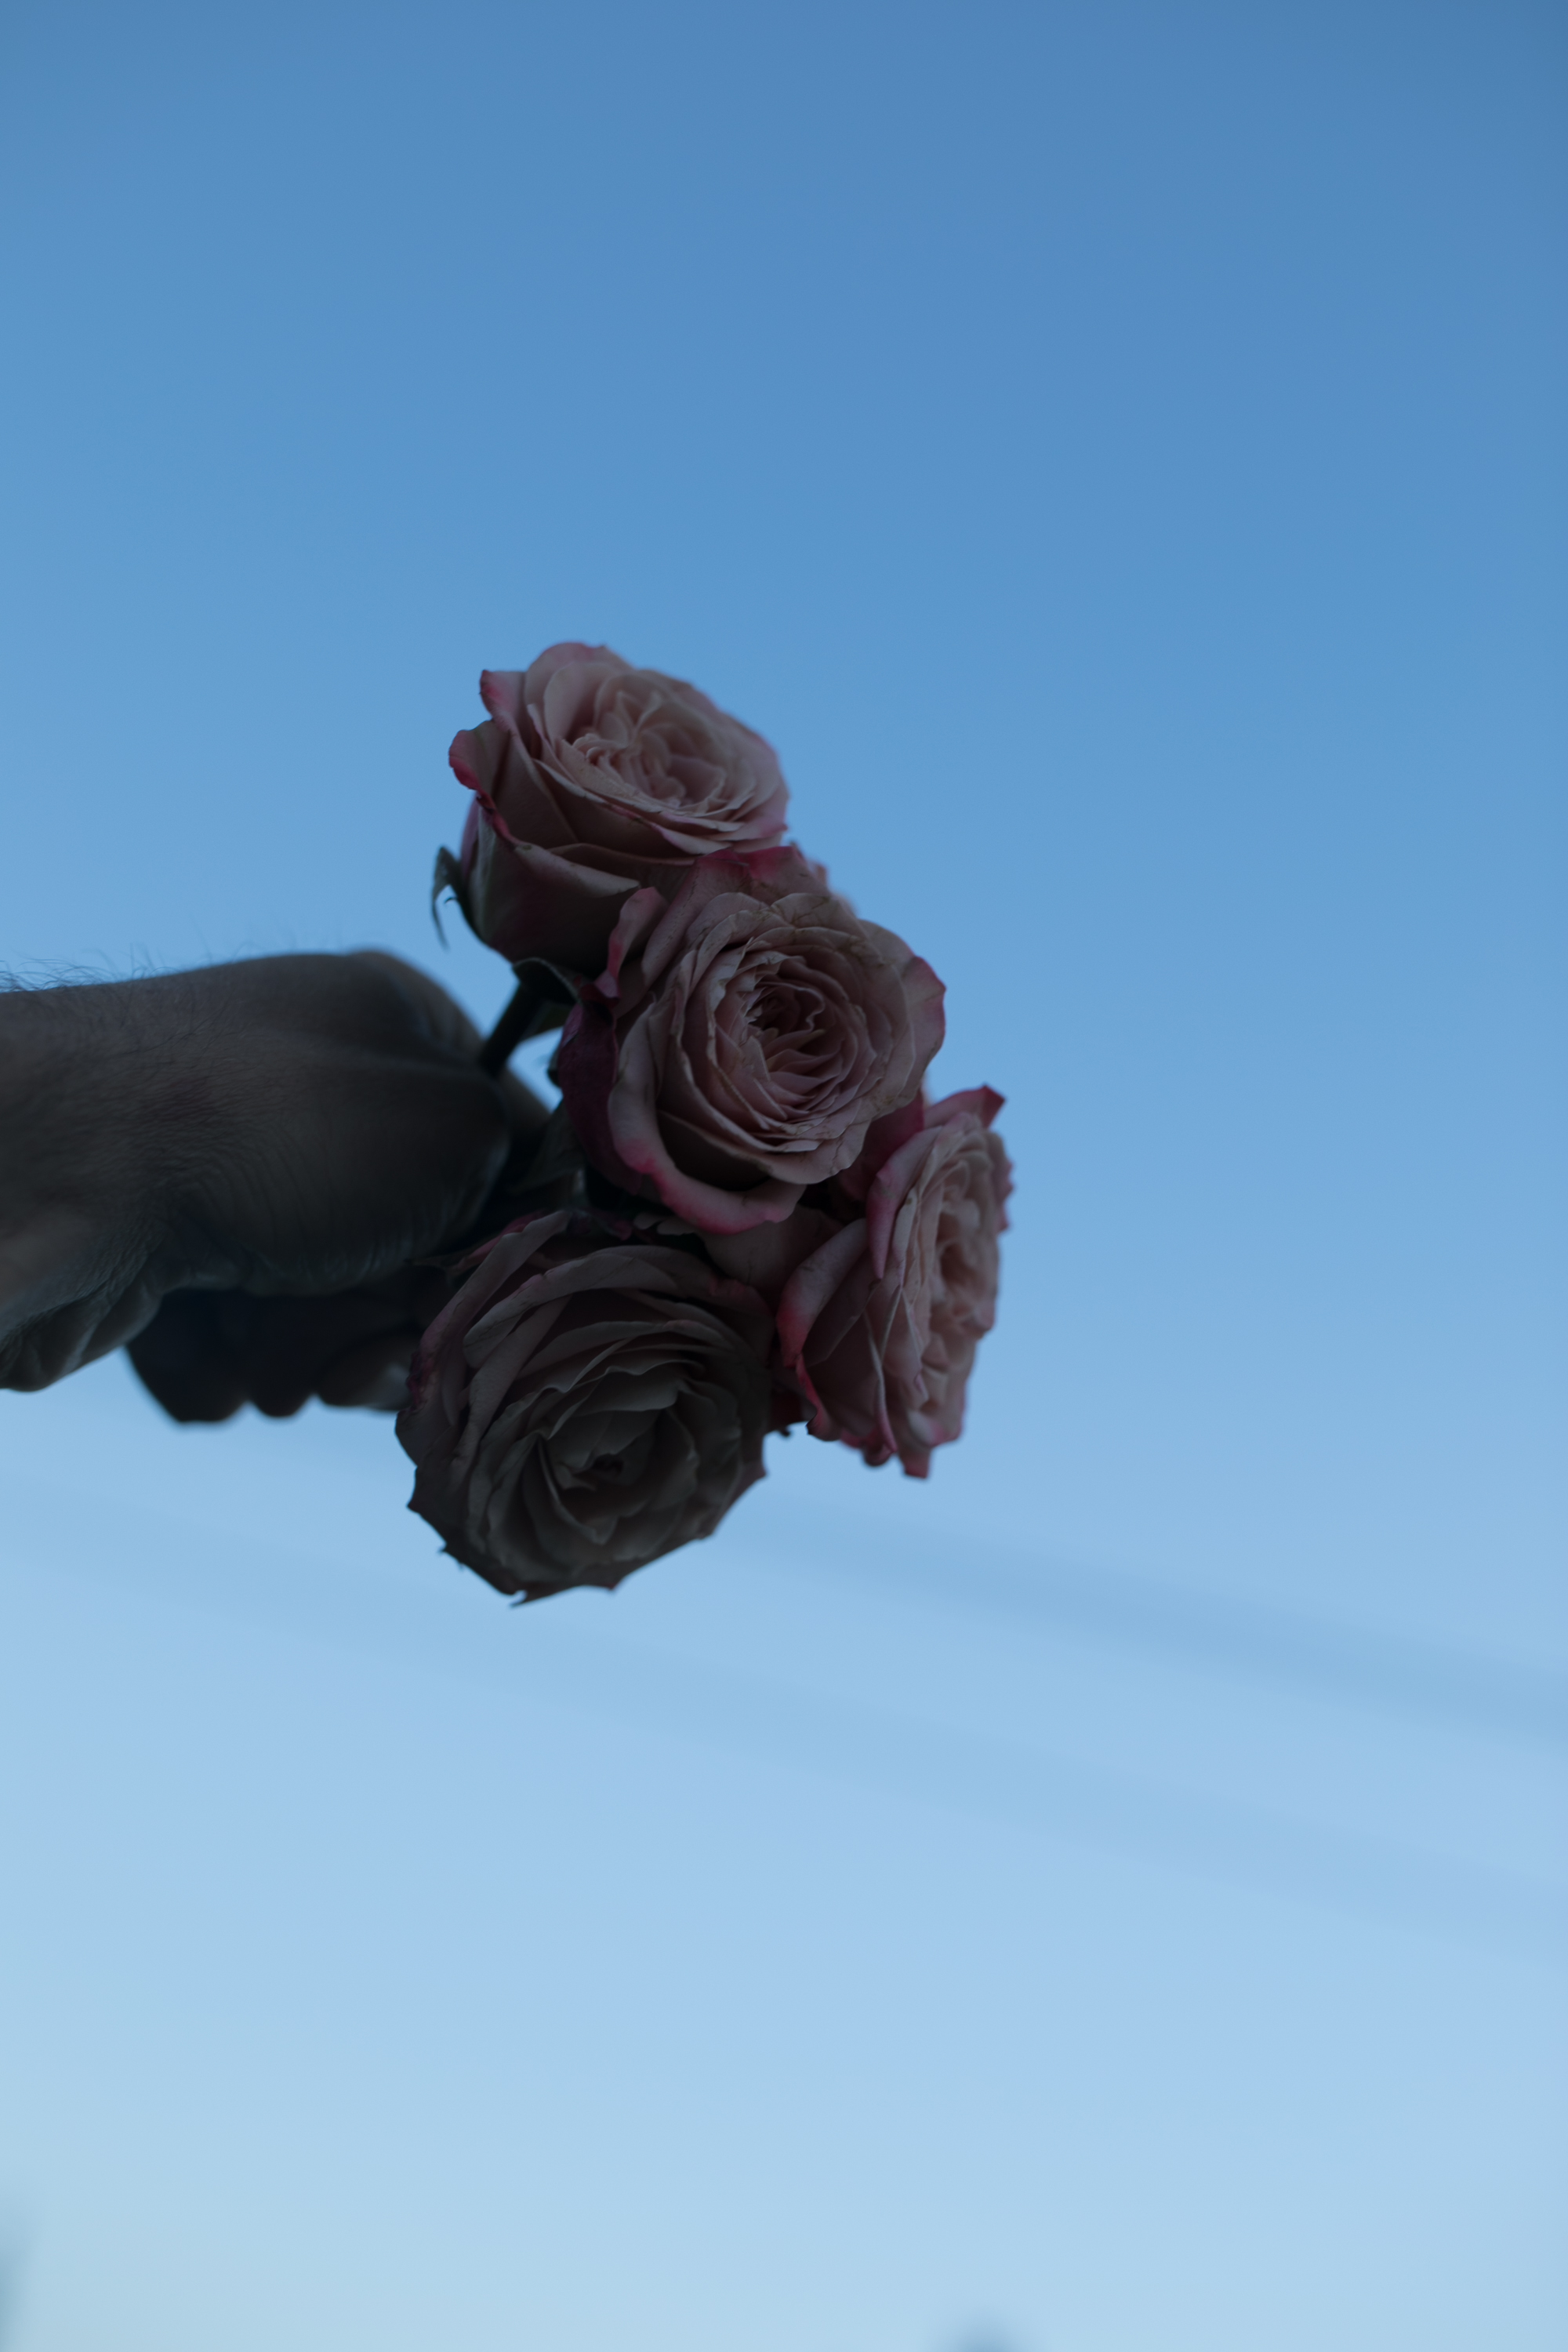 I noticed - the amazing floral designsin the middle of the tables during the reception and pulled some roses out of them. I went outside and set my camera to